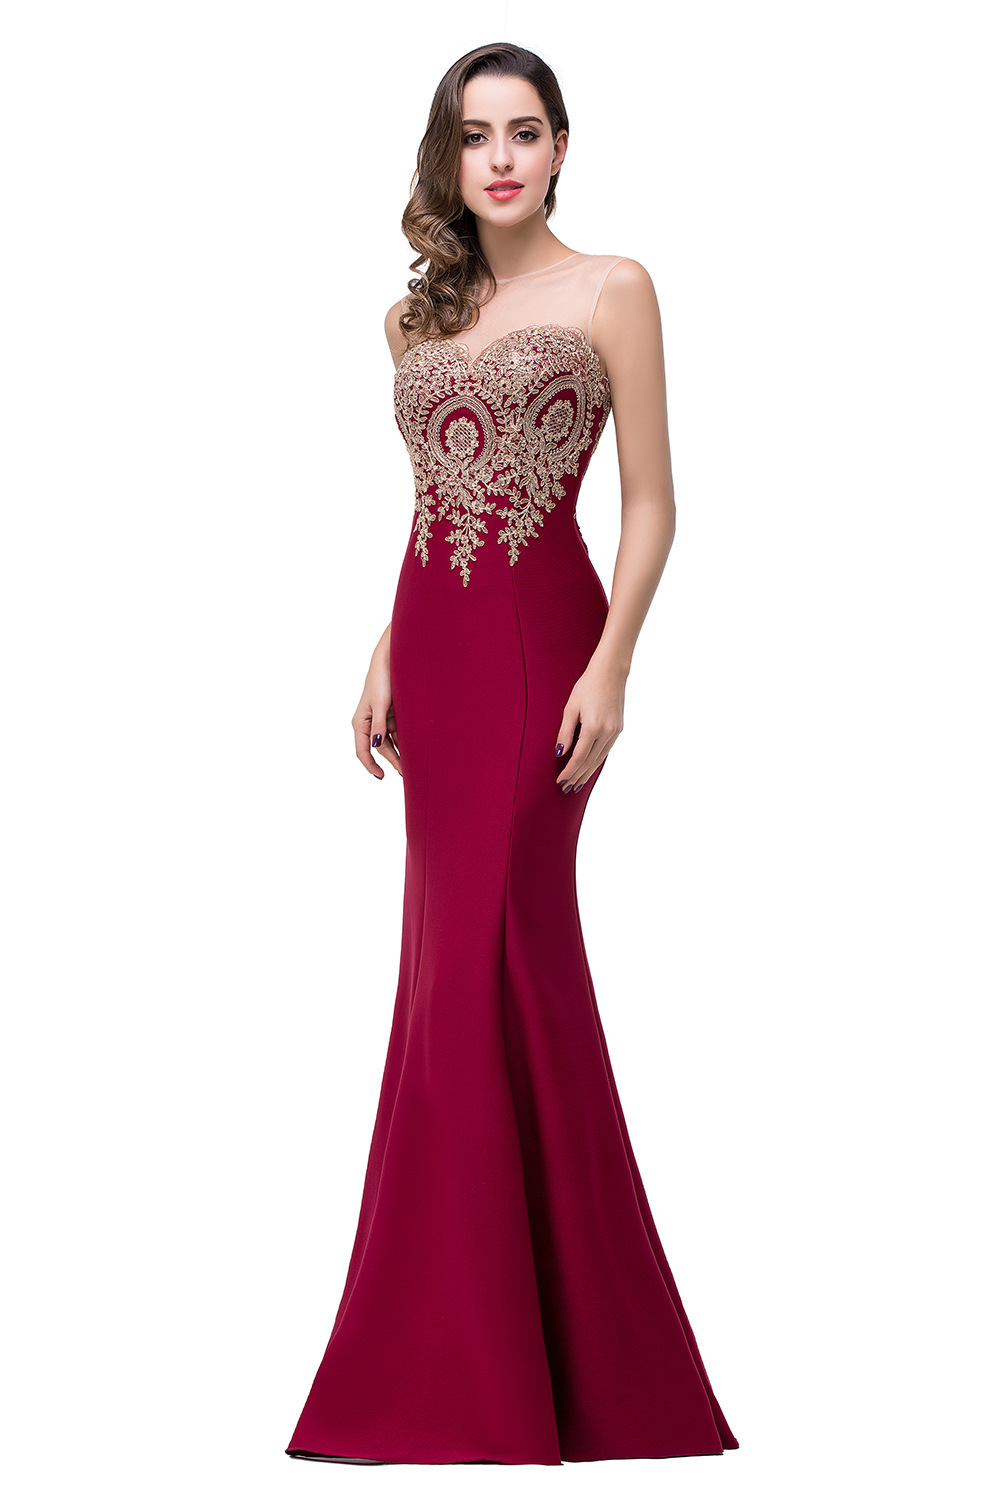 Cheap Mermaid New Royal Blue Long Evening Dress 2019 Robe De Soiree Longue Formal Party Evening Gown With Appliques in Evening Dresses from Weddings Events